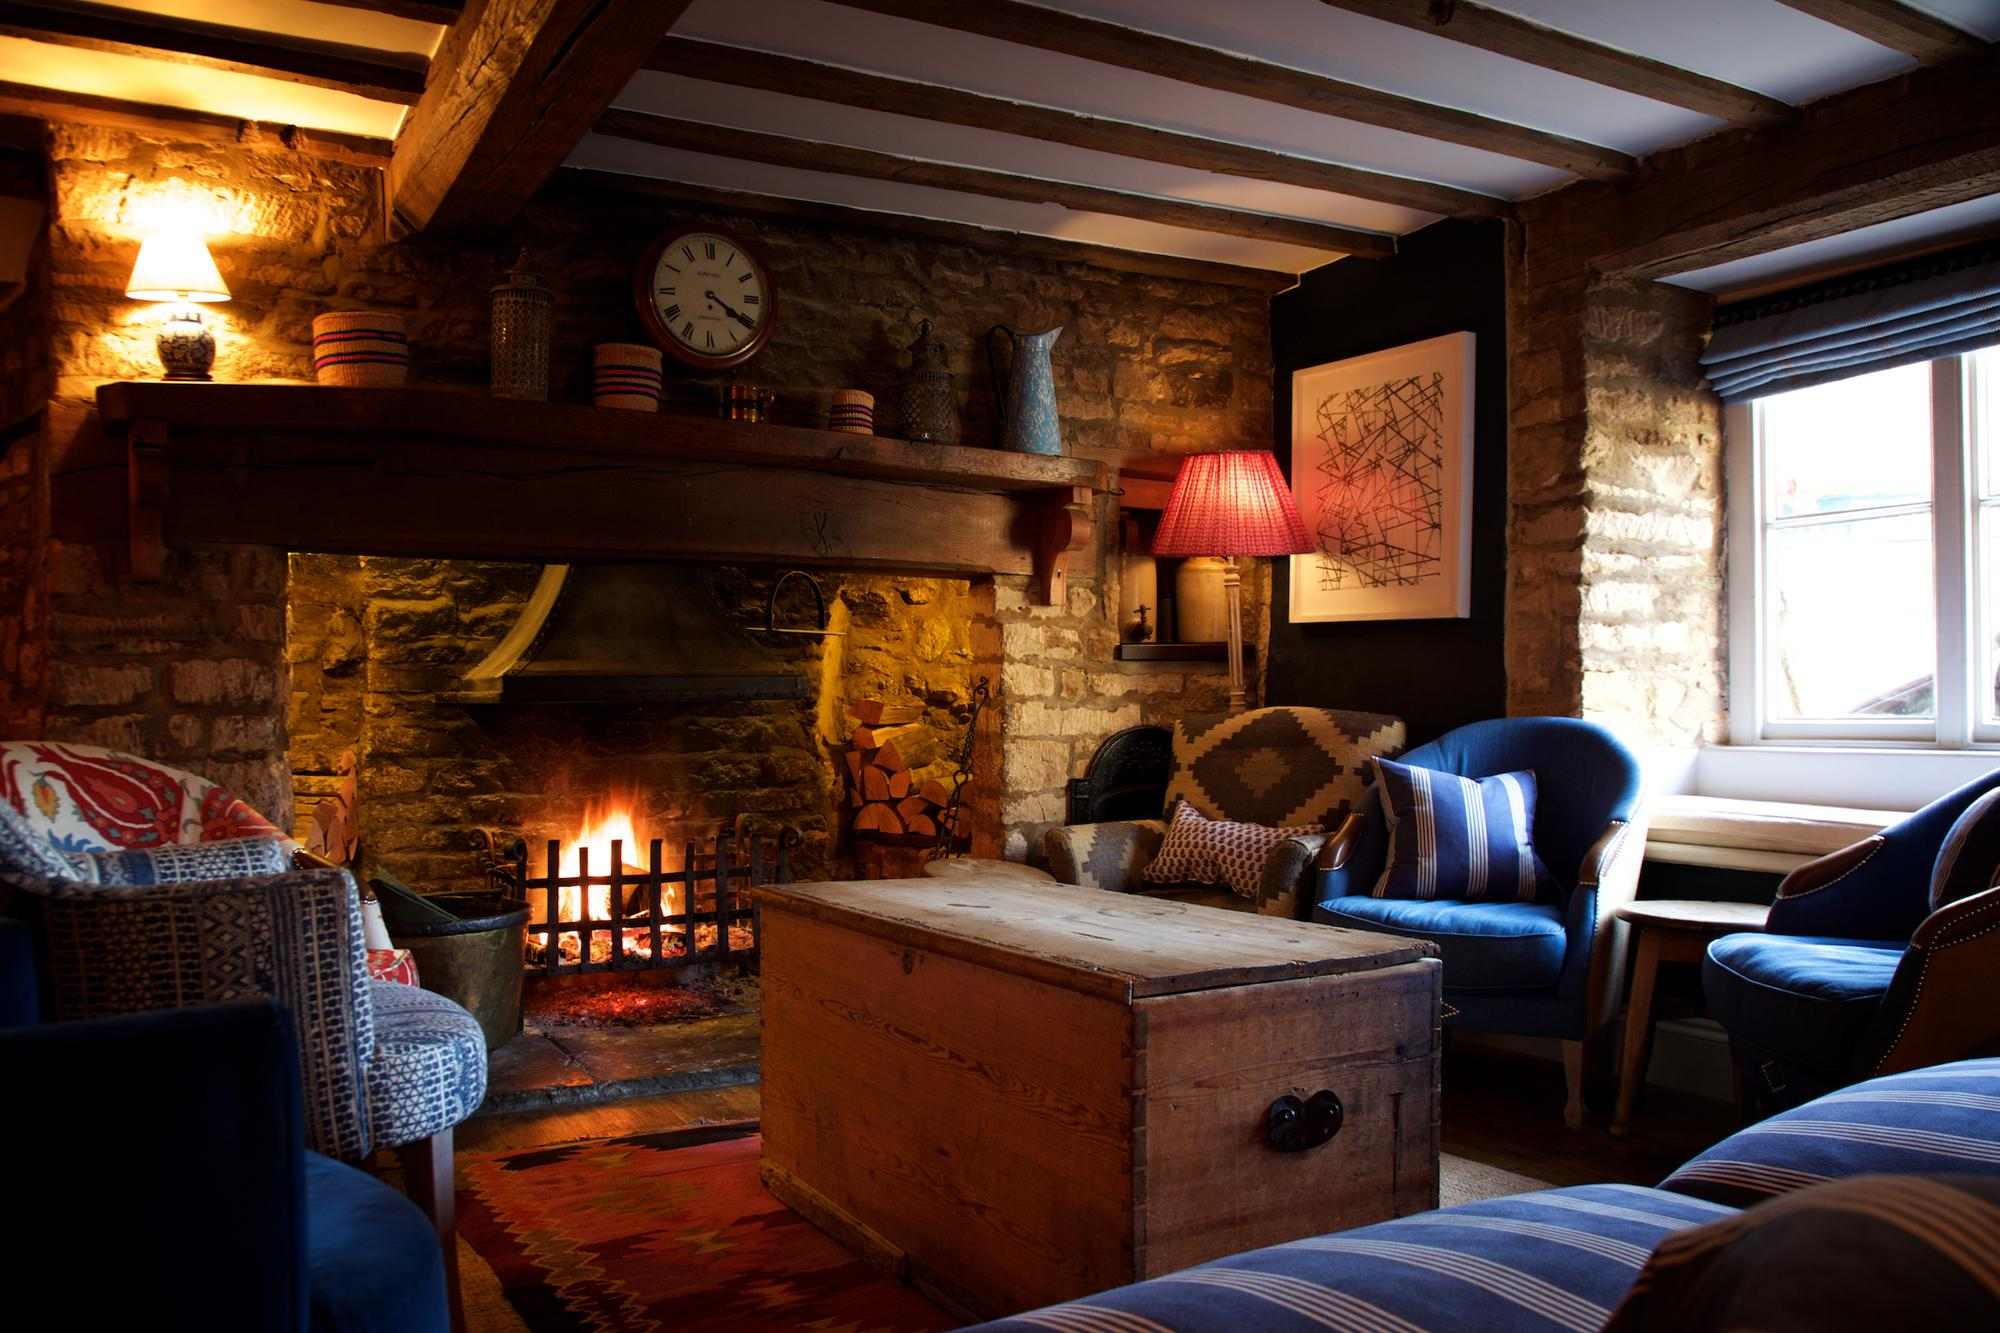 Hotels in Charlbury holidays at Cool Places